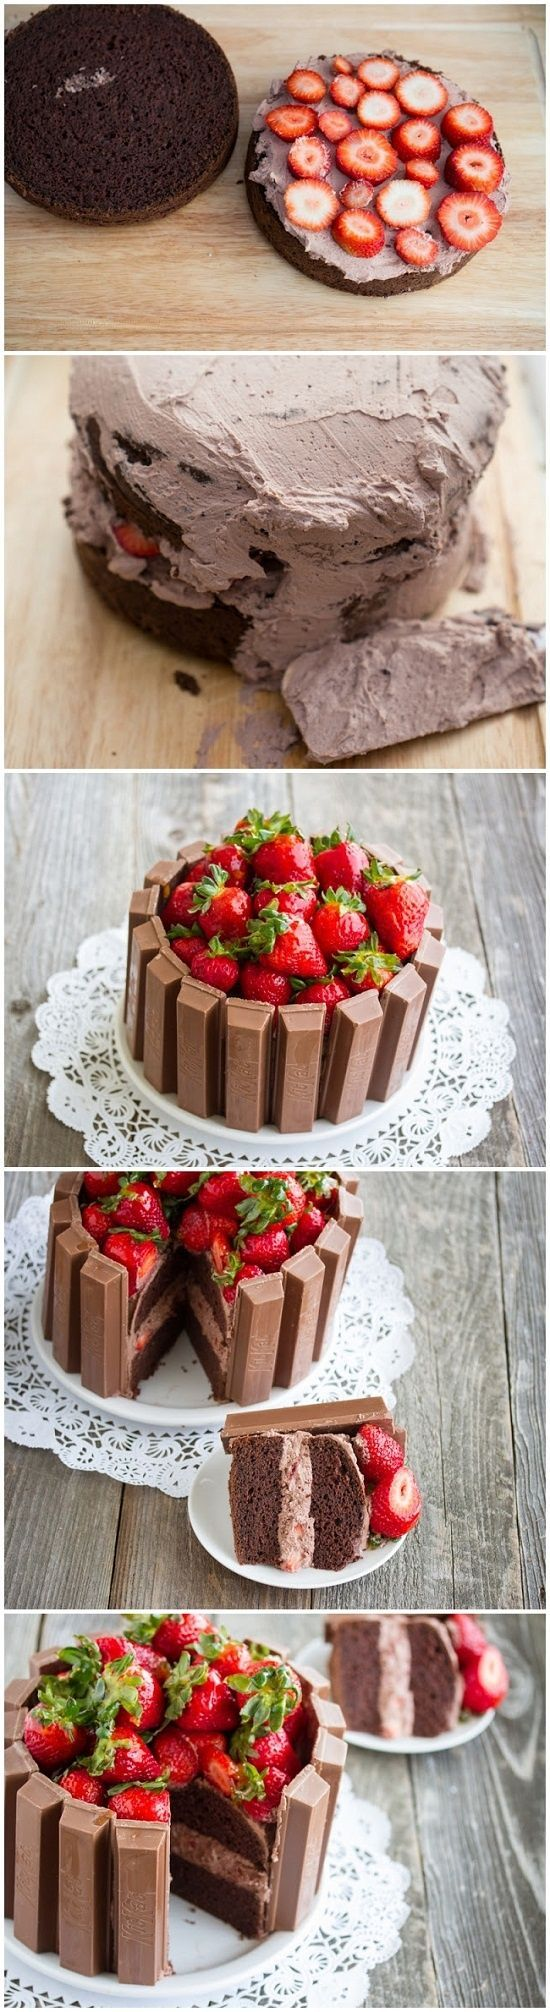 10 Fun and Creative Ways to Bake Your Own Birthday Cake